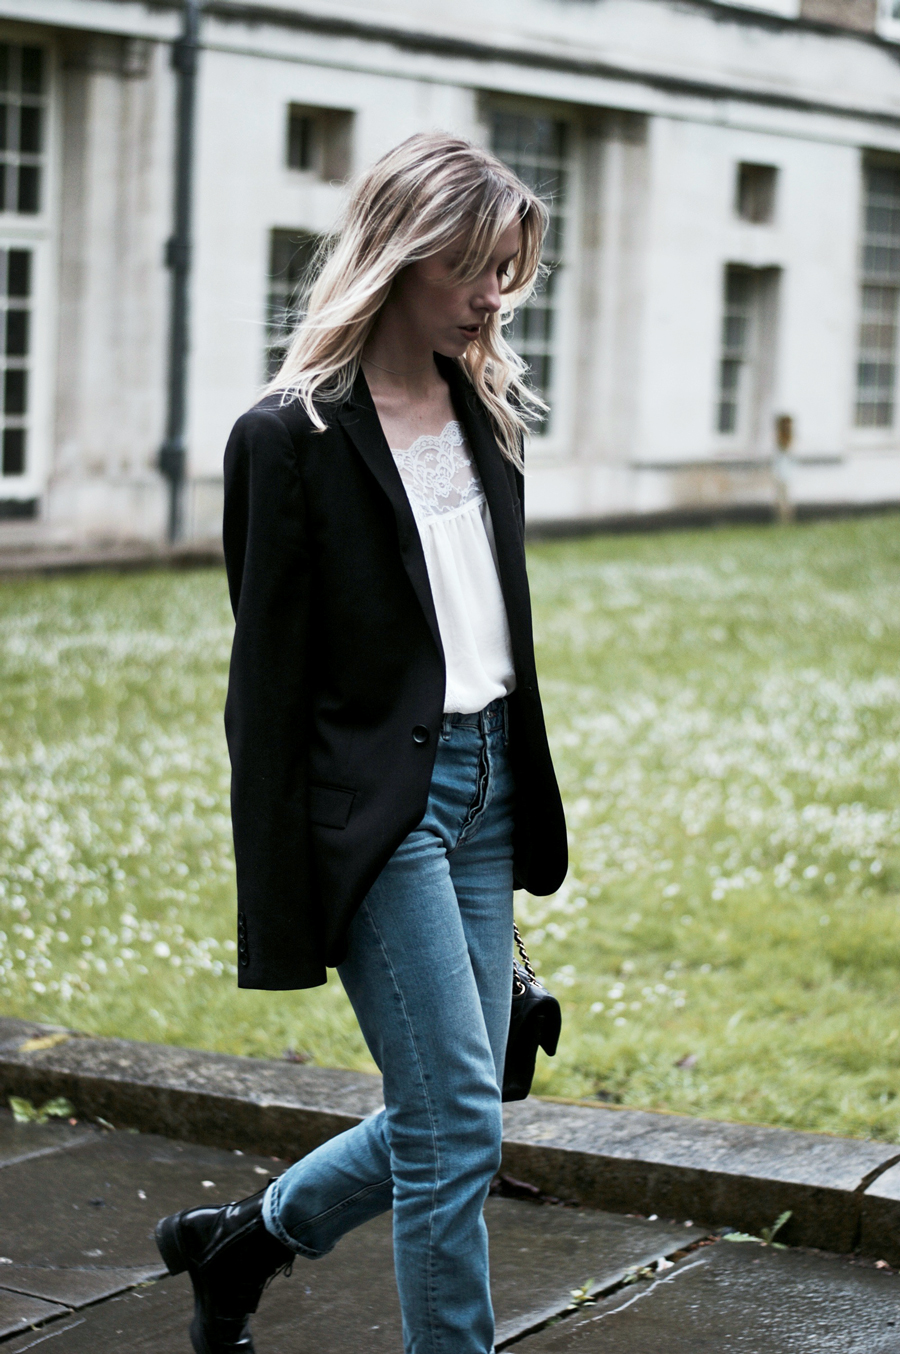 Rainy Day Style. A Simply, Chic Look